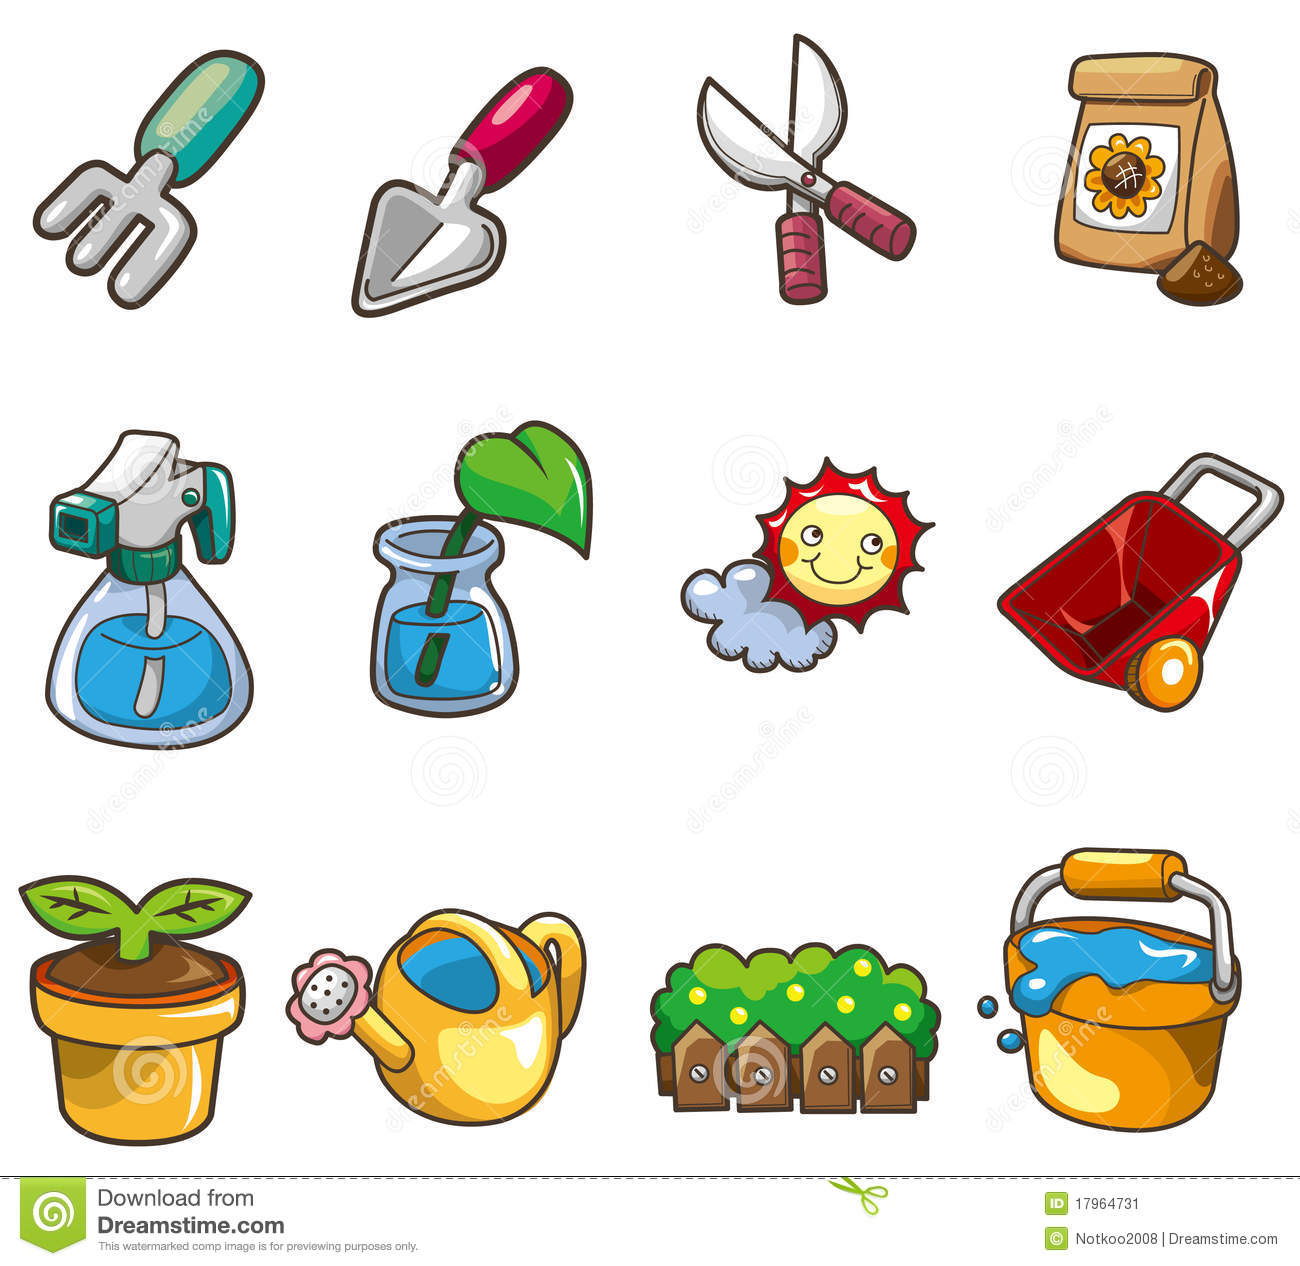 Cartoon gardening icon stock vector image of cartoon for Gardening tools cartoon